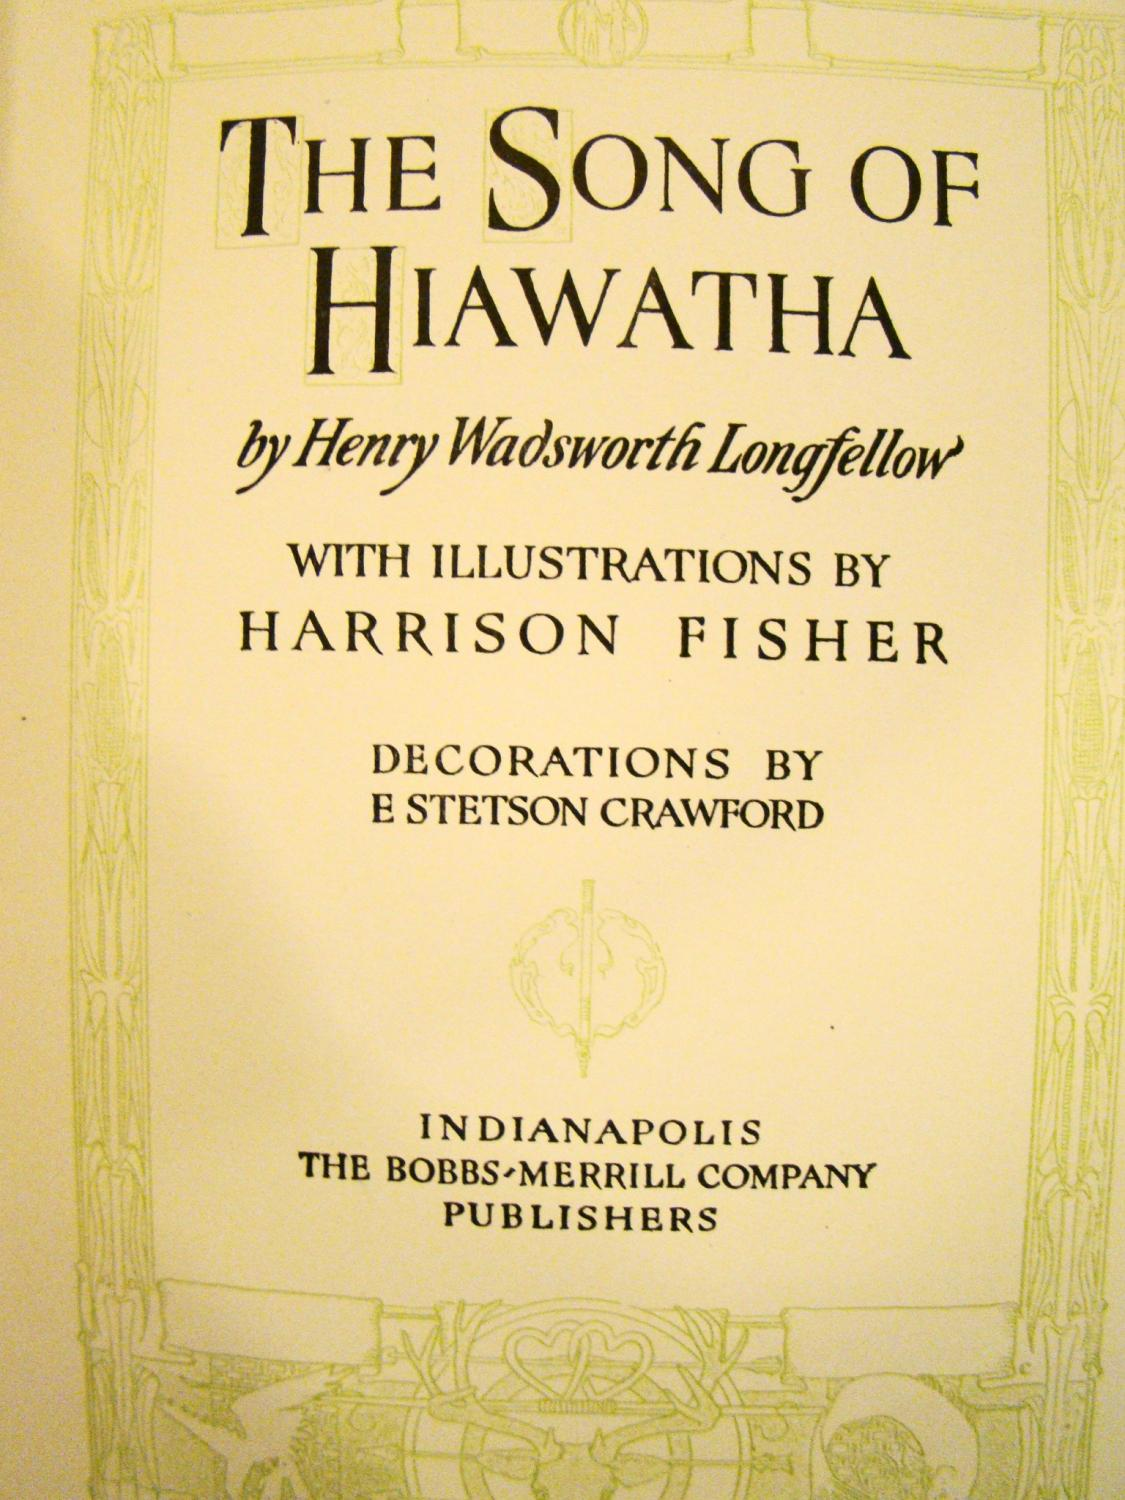 the song of hiawatha by longfellow henry wadsworth illustrated  the song of hiawatha longfellow henry wadsworth illustrated by harrison fisher